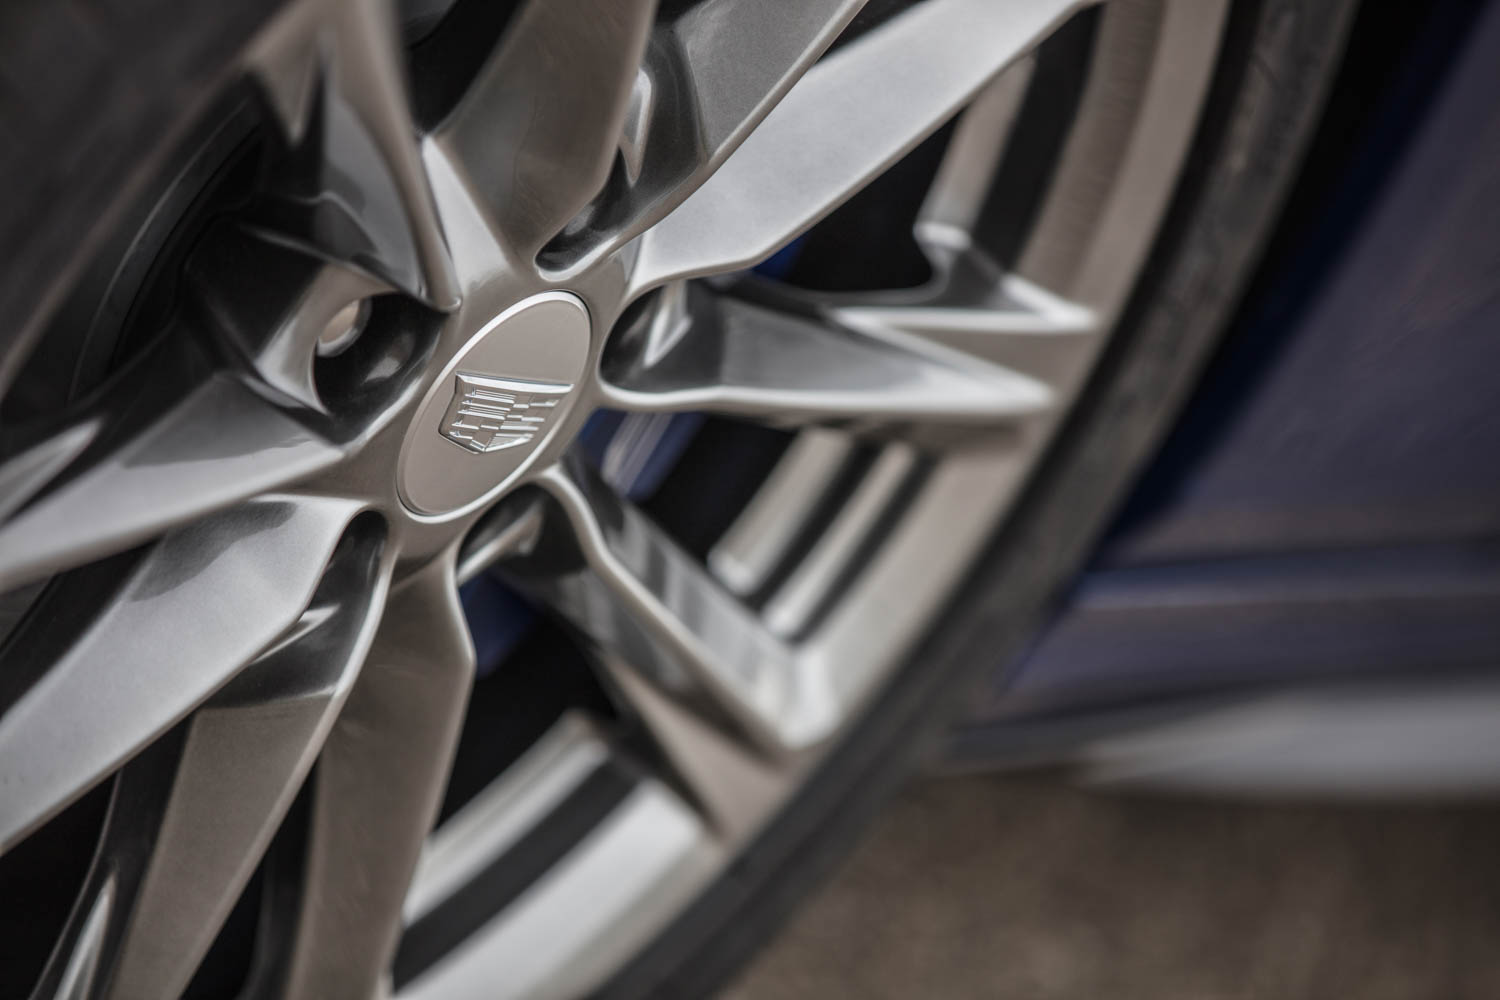 2020 Cadillac CT4-V wheel